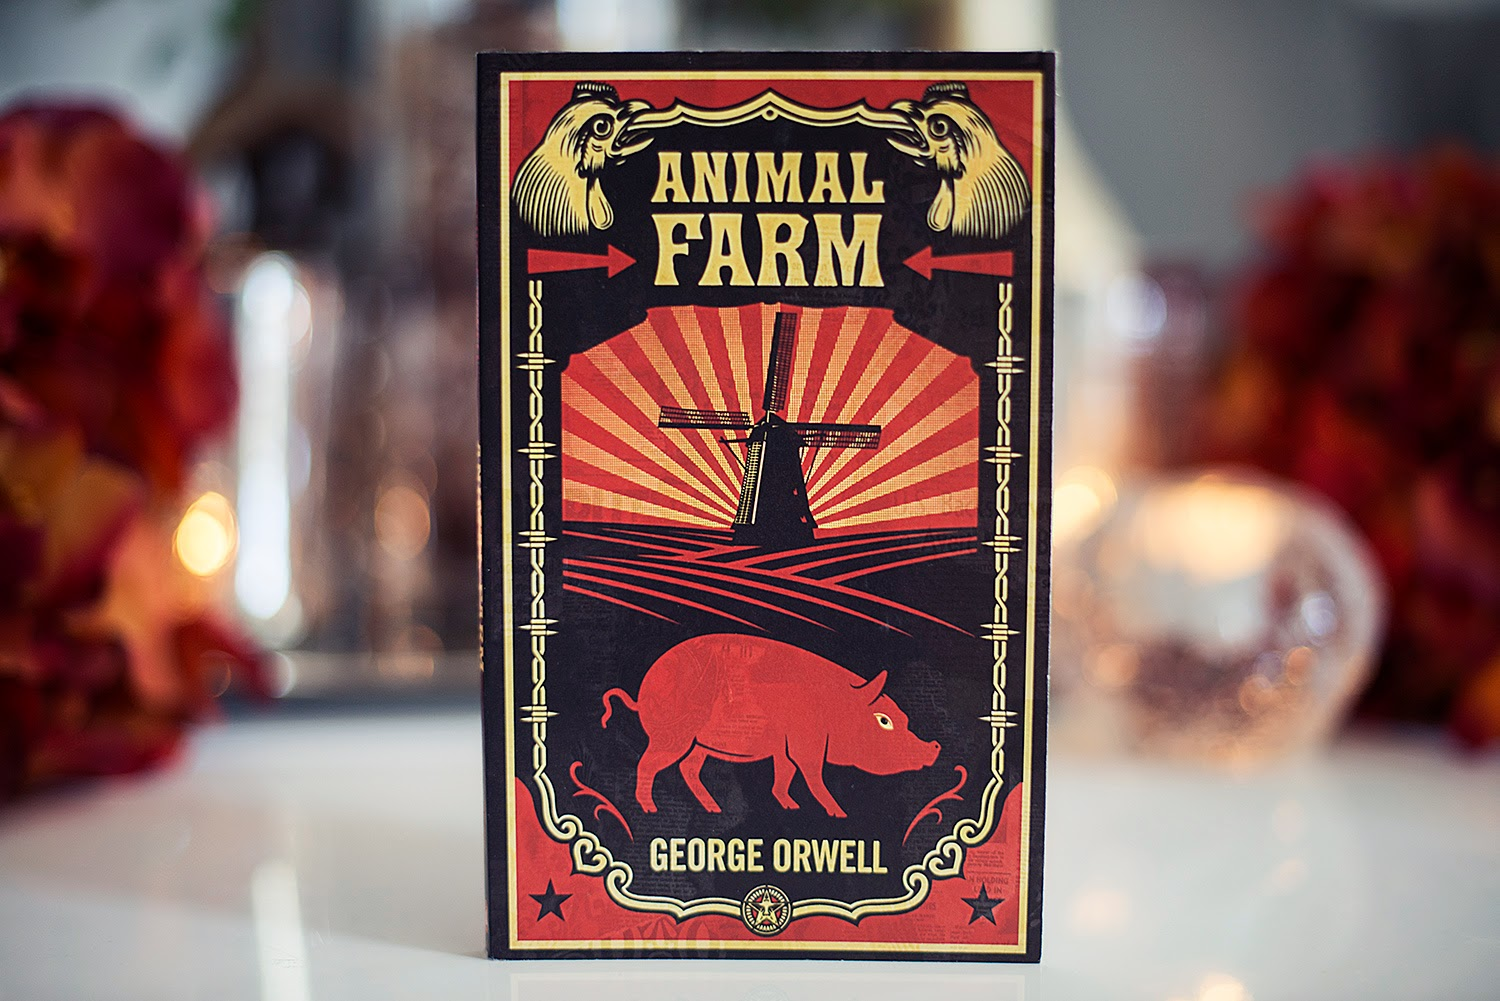 animal farm by george orwell a George orwell's animal farm is an allegory for communism & the russian revolution activities include animal farm characters, summary, allegory, & more.